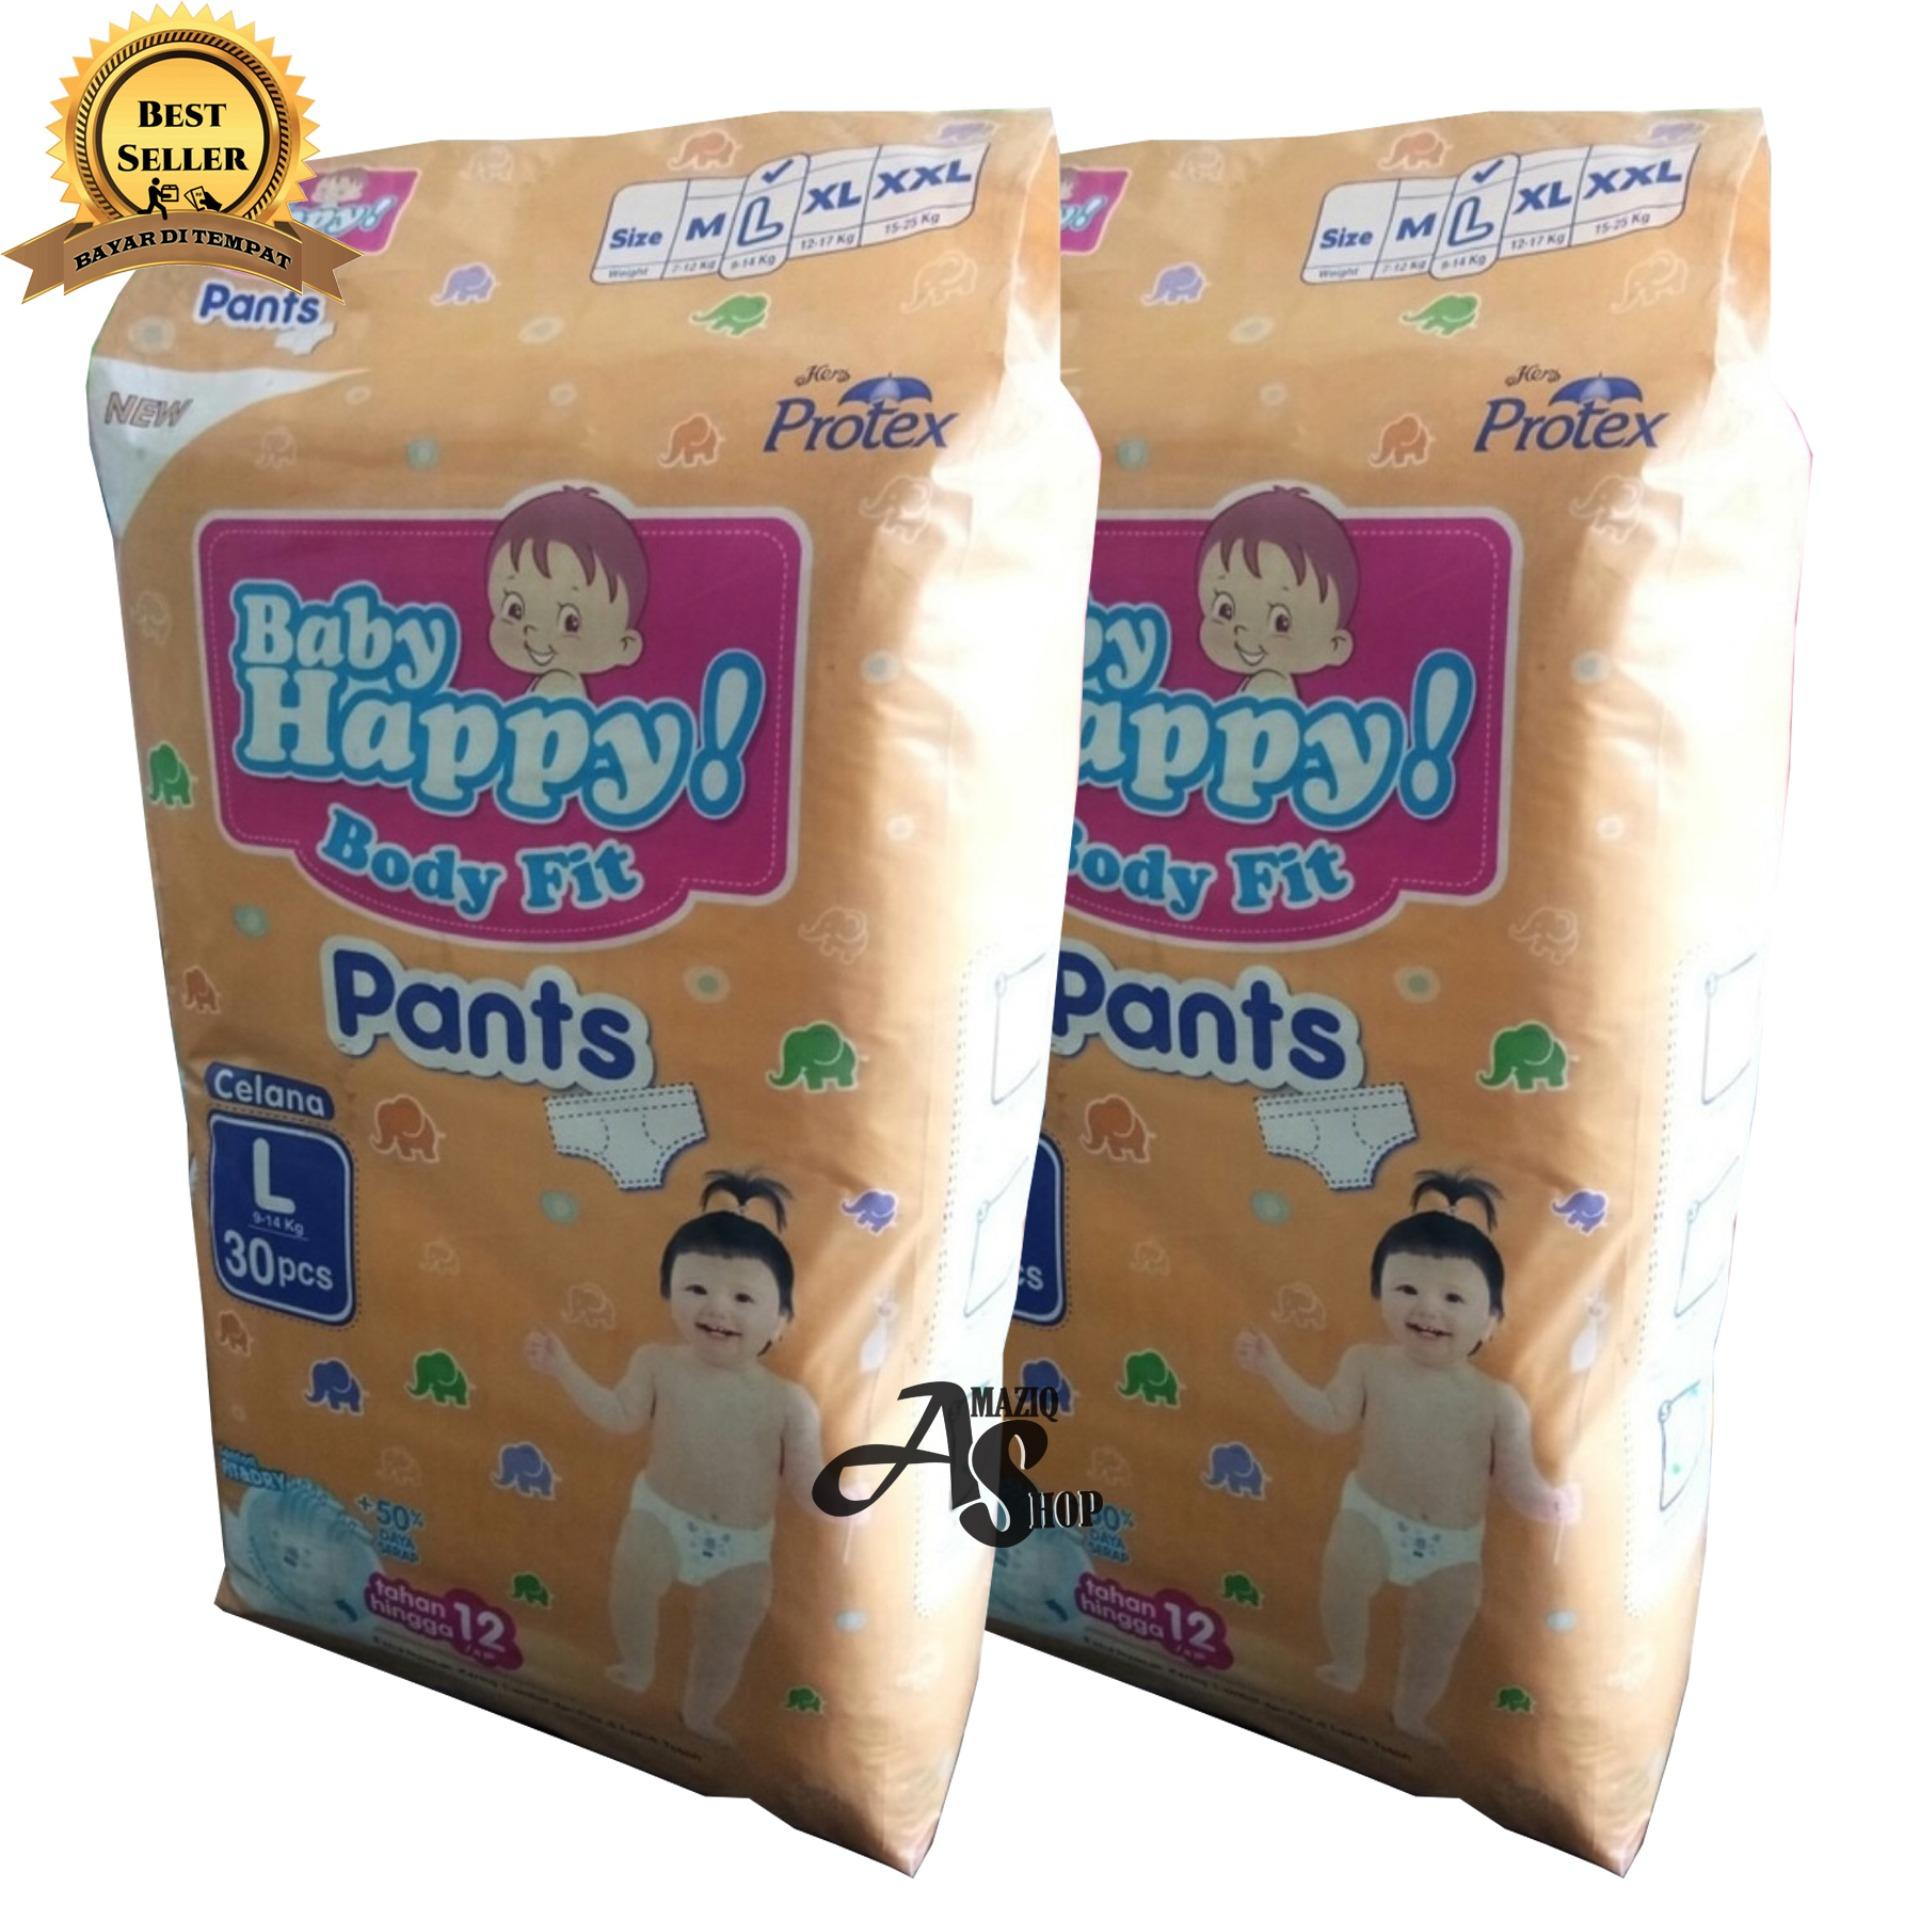 Kehebatan Baby Happy Body Fit Pants Pack L 30 Isi 2 Dan Harga Goon Smile Wonderline Super Jumbo Xxl 24 Bonus 3